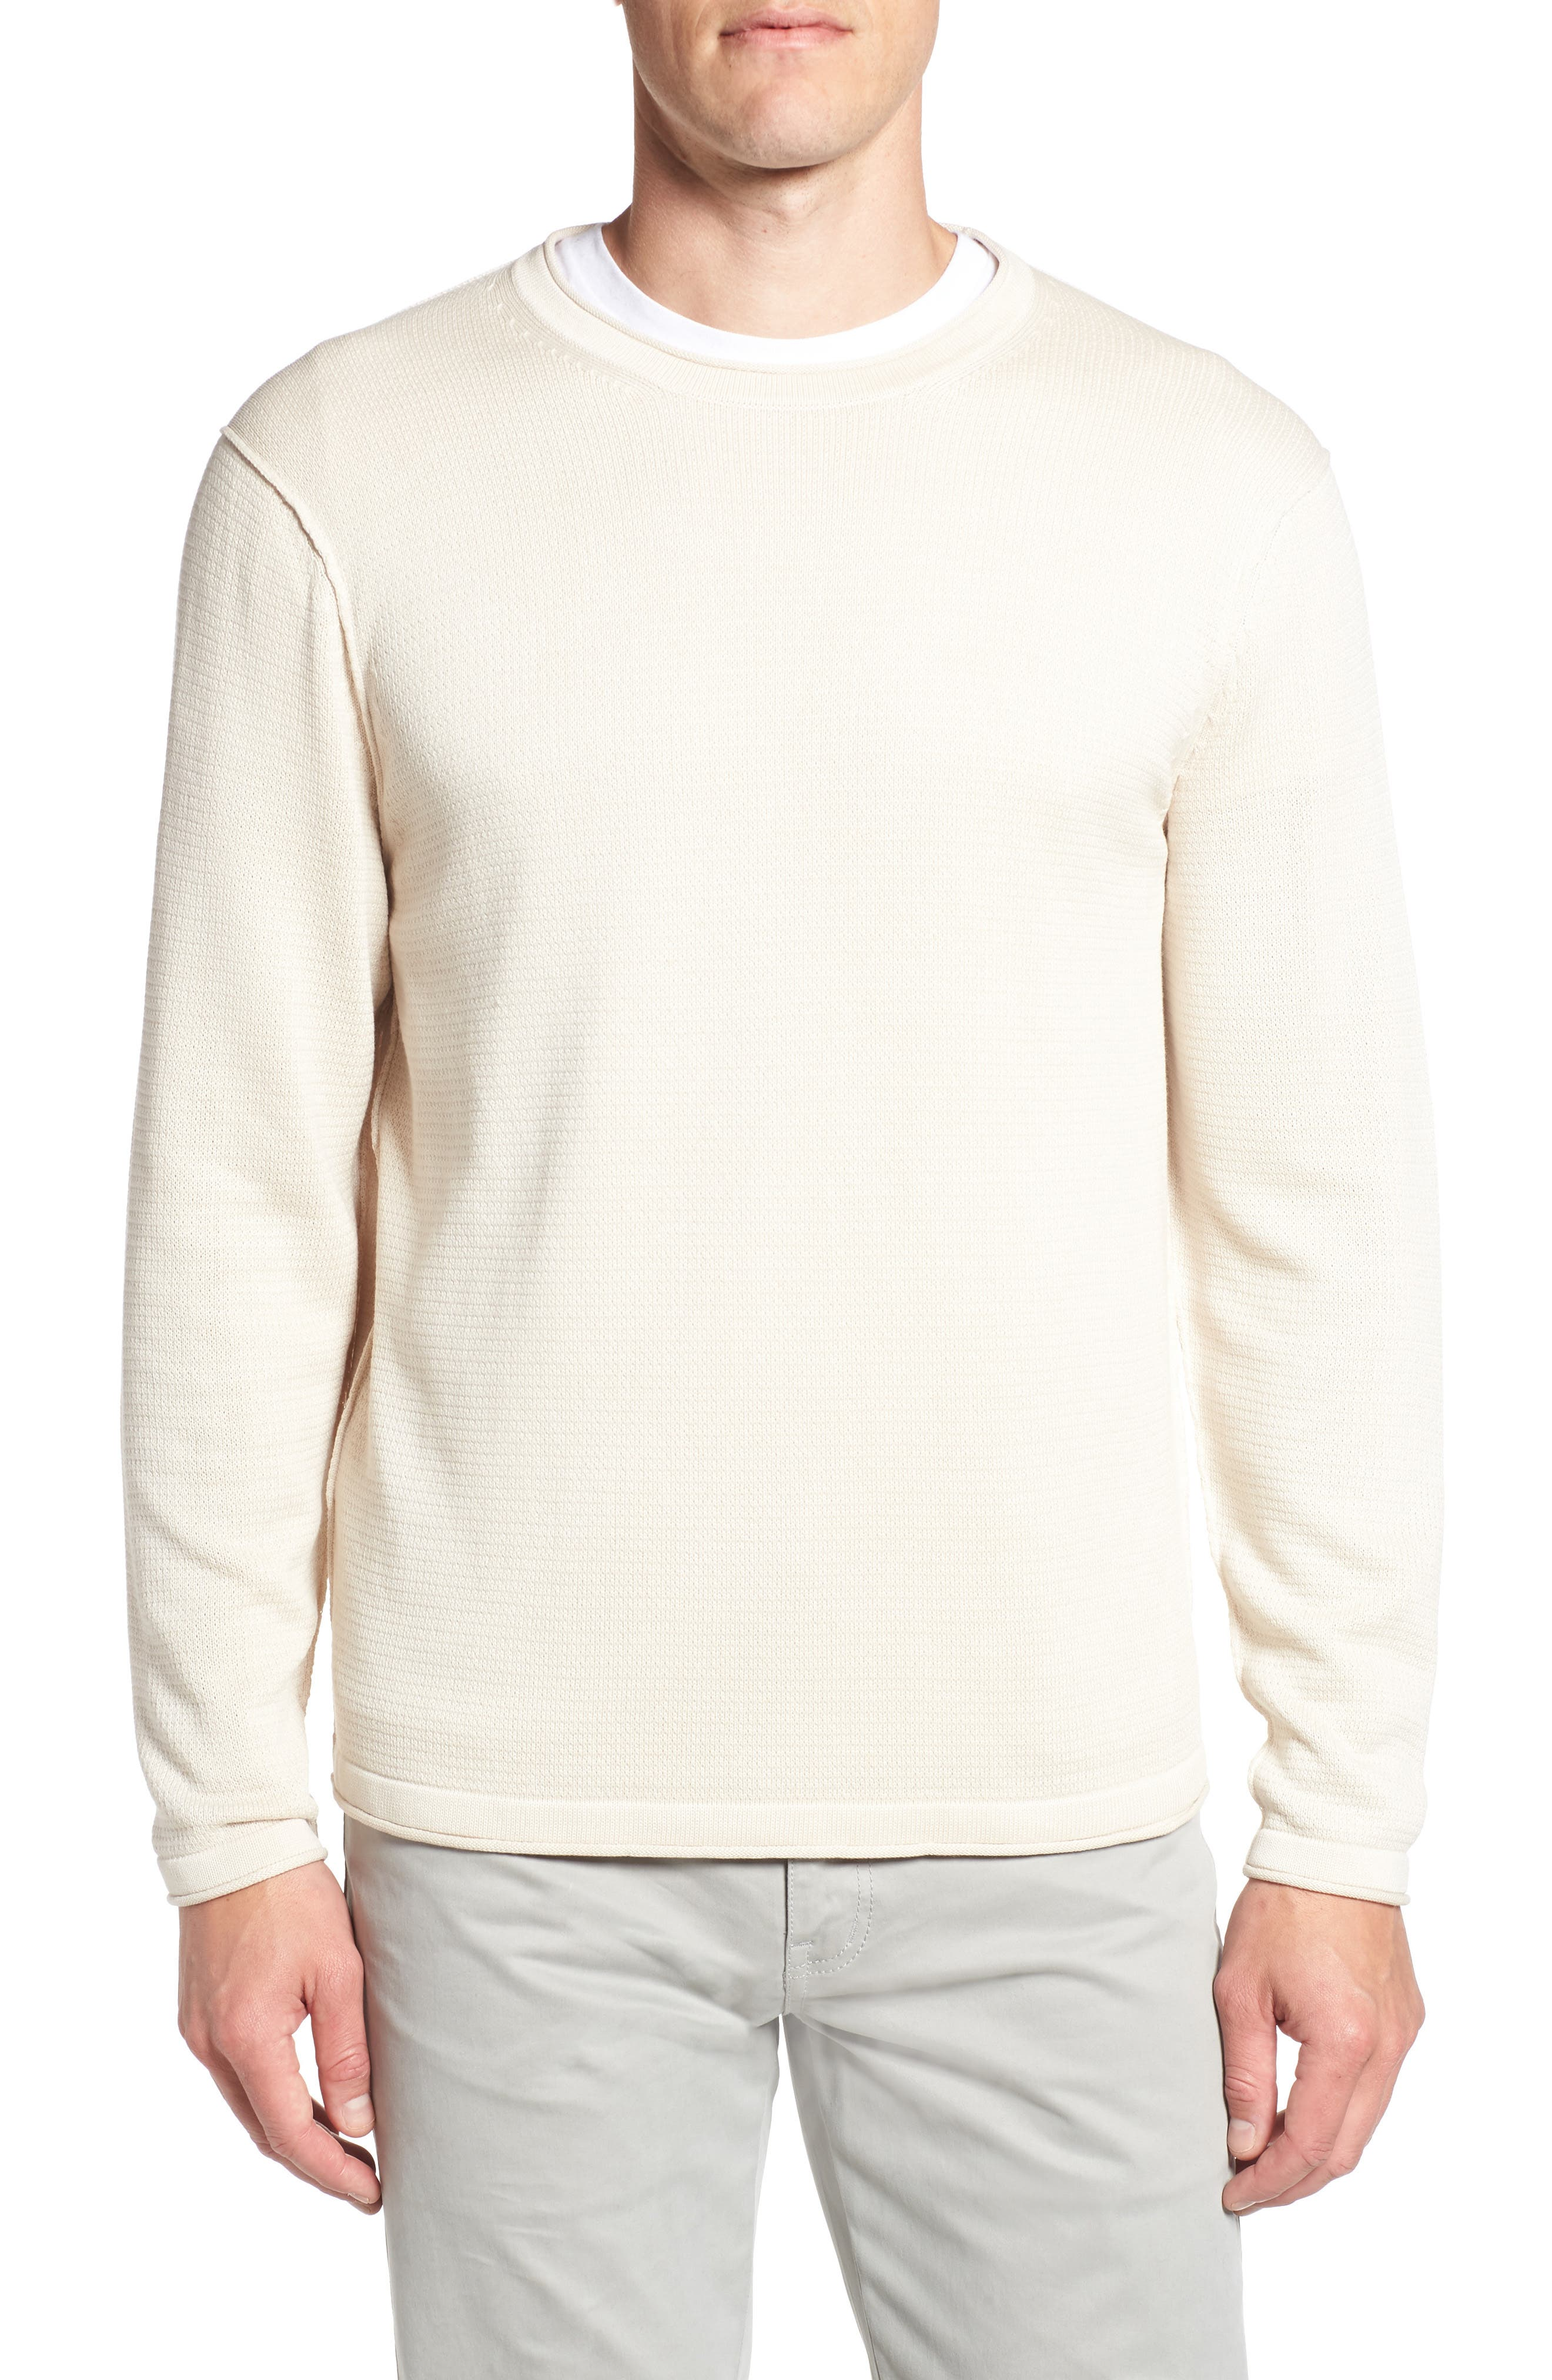 TOMMY BAHAMA,                             South Shore Flip Sweater,                             Main thumbnail 1, color,                             200